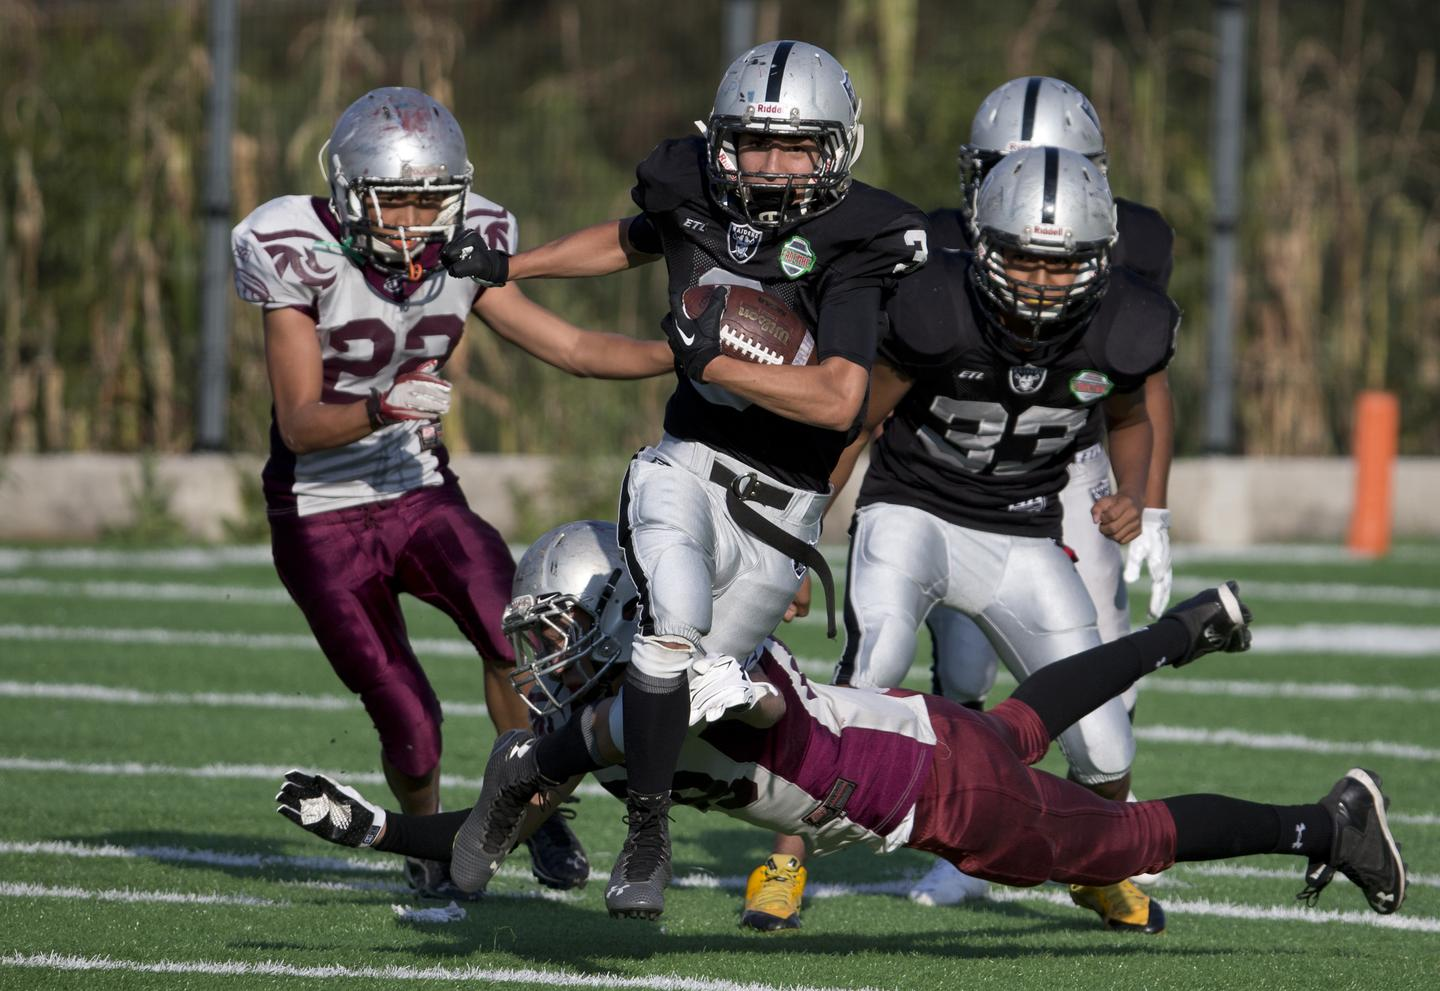 concussions and football 2 essay The study, which was an analysis of peer-reviewed studies on head trauma in a variety of high school sports, estimated that high school football players suffered 112 concussions for every 10,000.